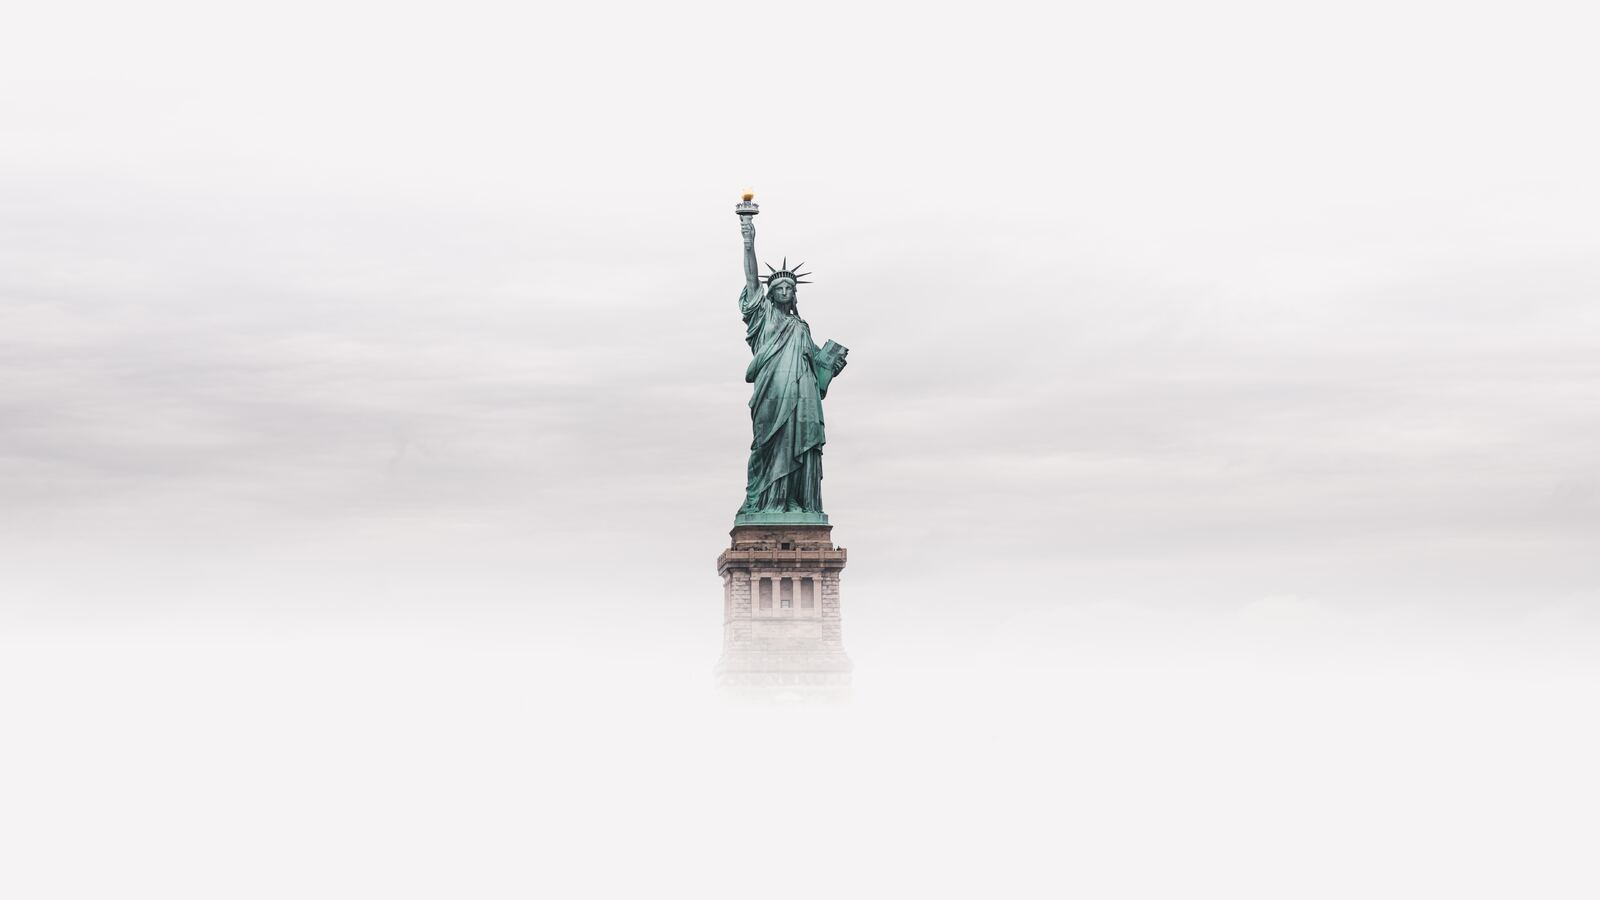 statue-of-liberty-8k-vq.jpg